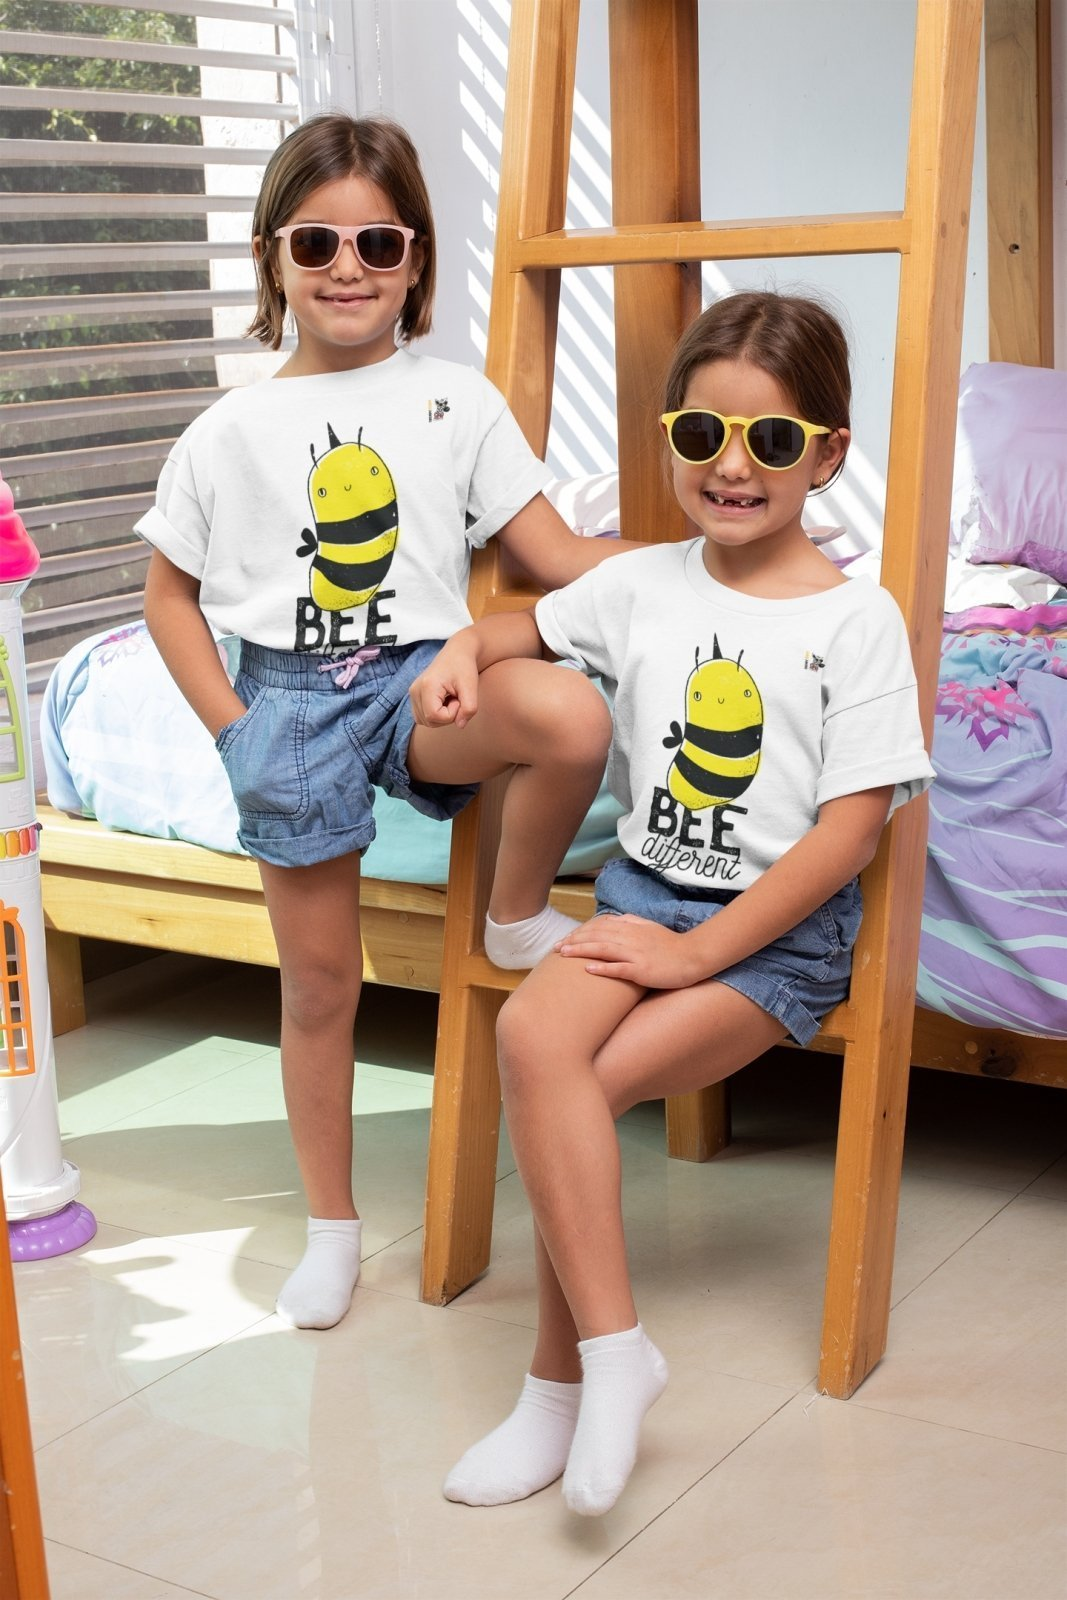 Be Different - Kids T-Shirt - Trendy Zebra